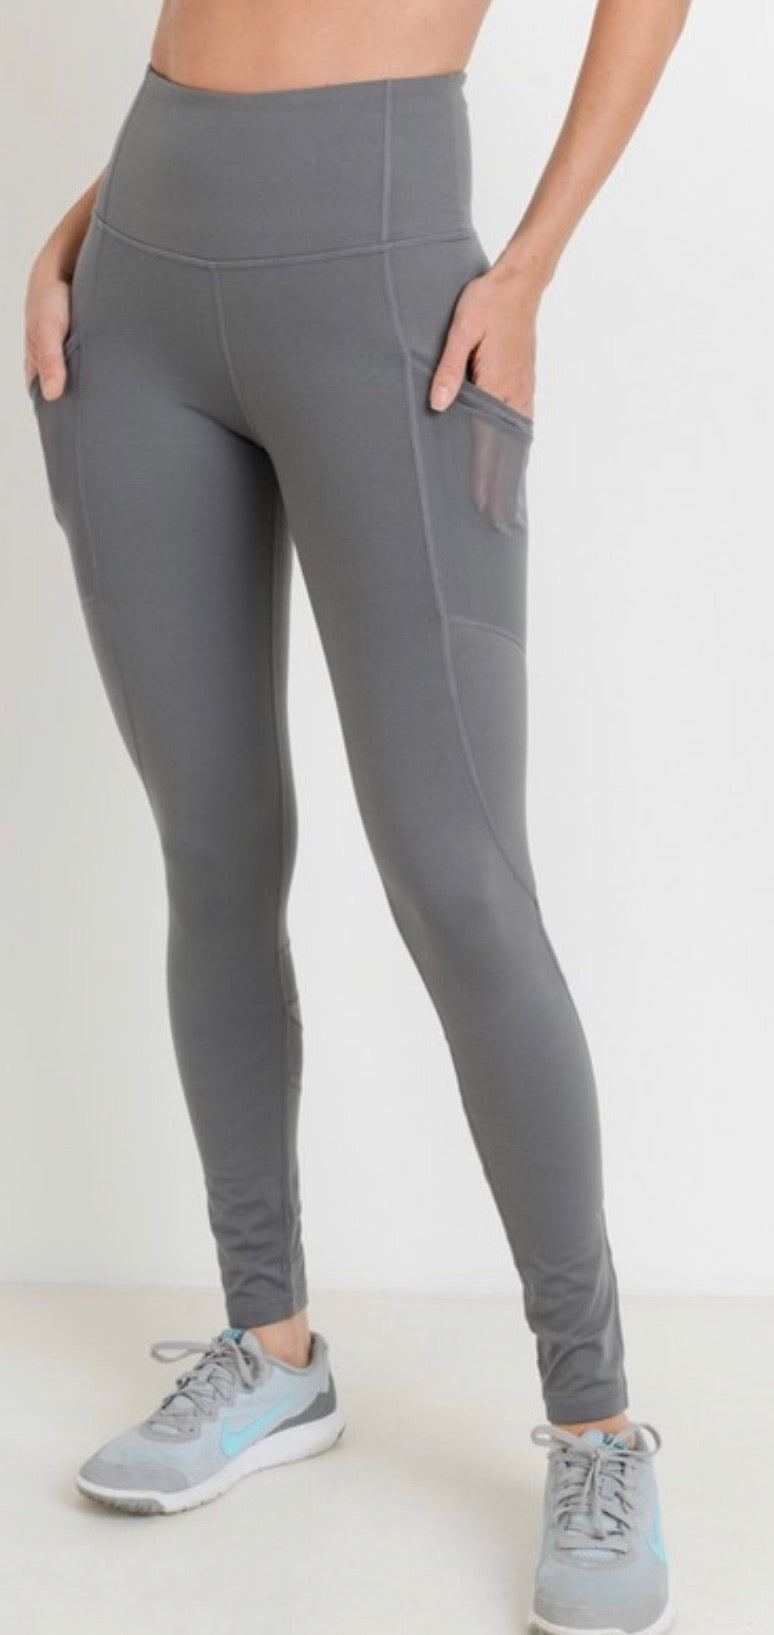 Medium Grey Leggings